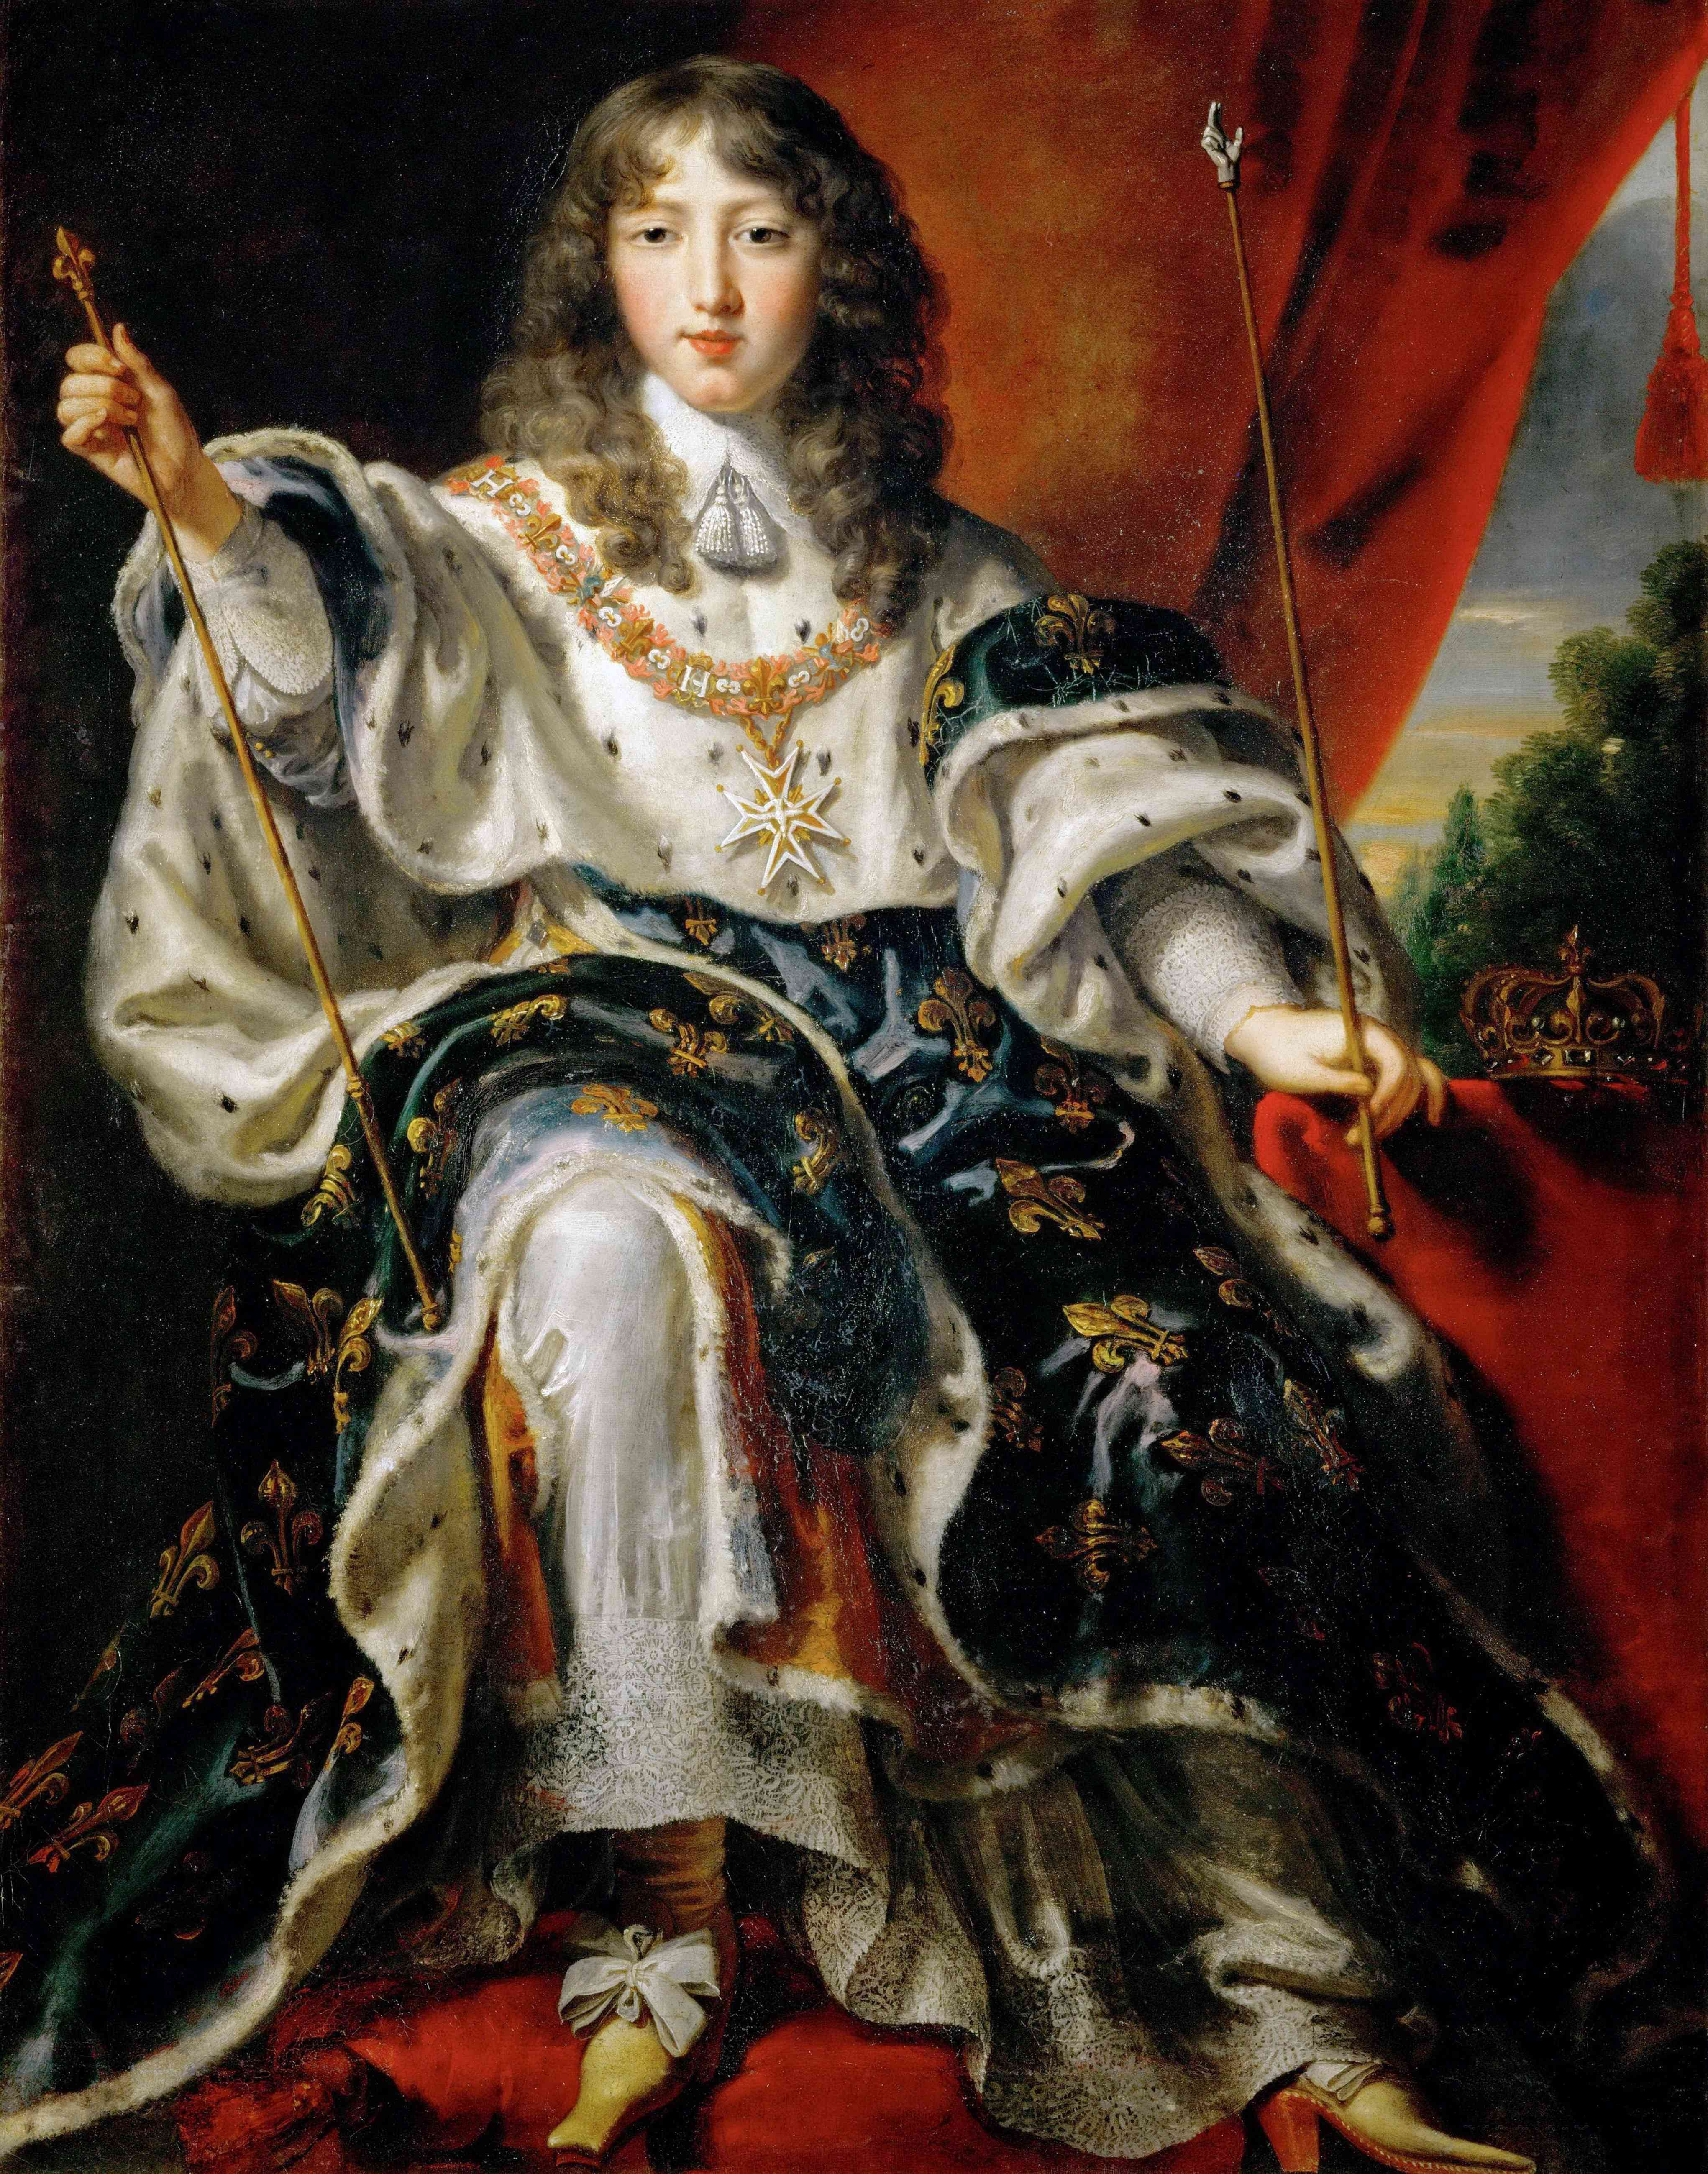 Louis XIV, King of France in his Coronation Robes